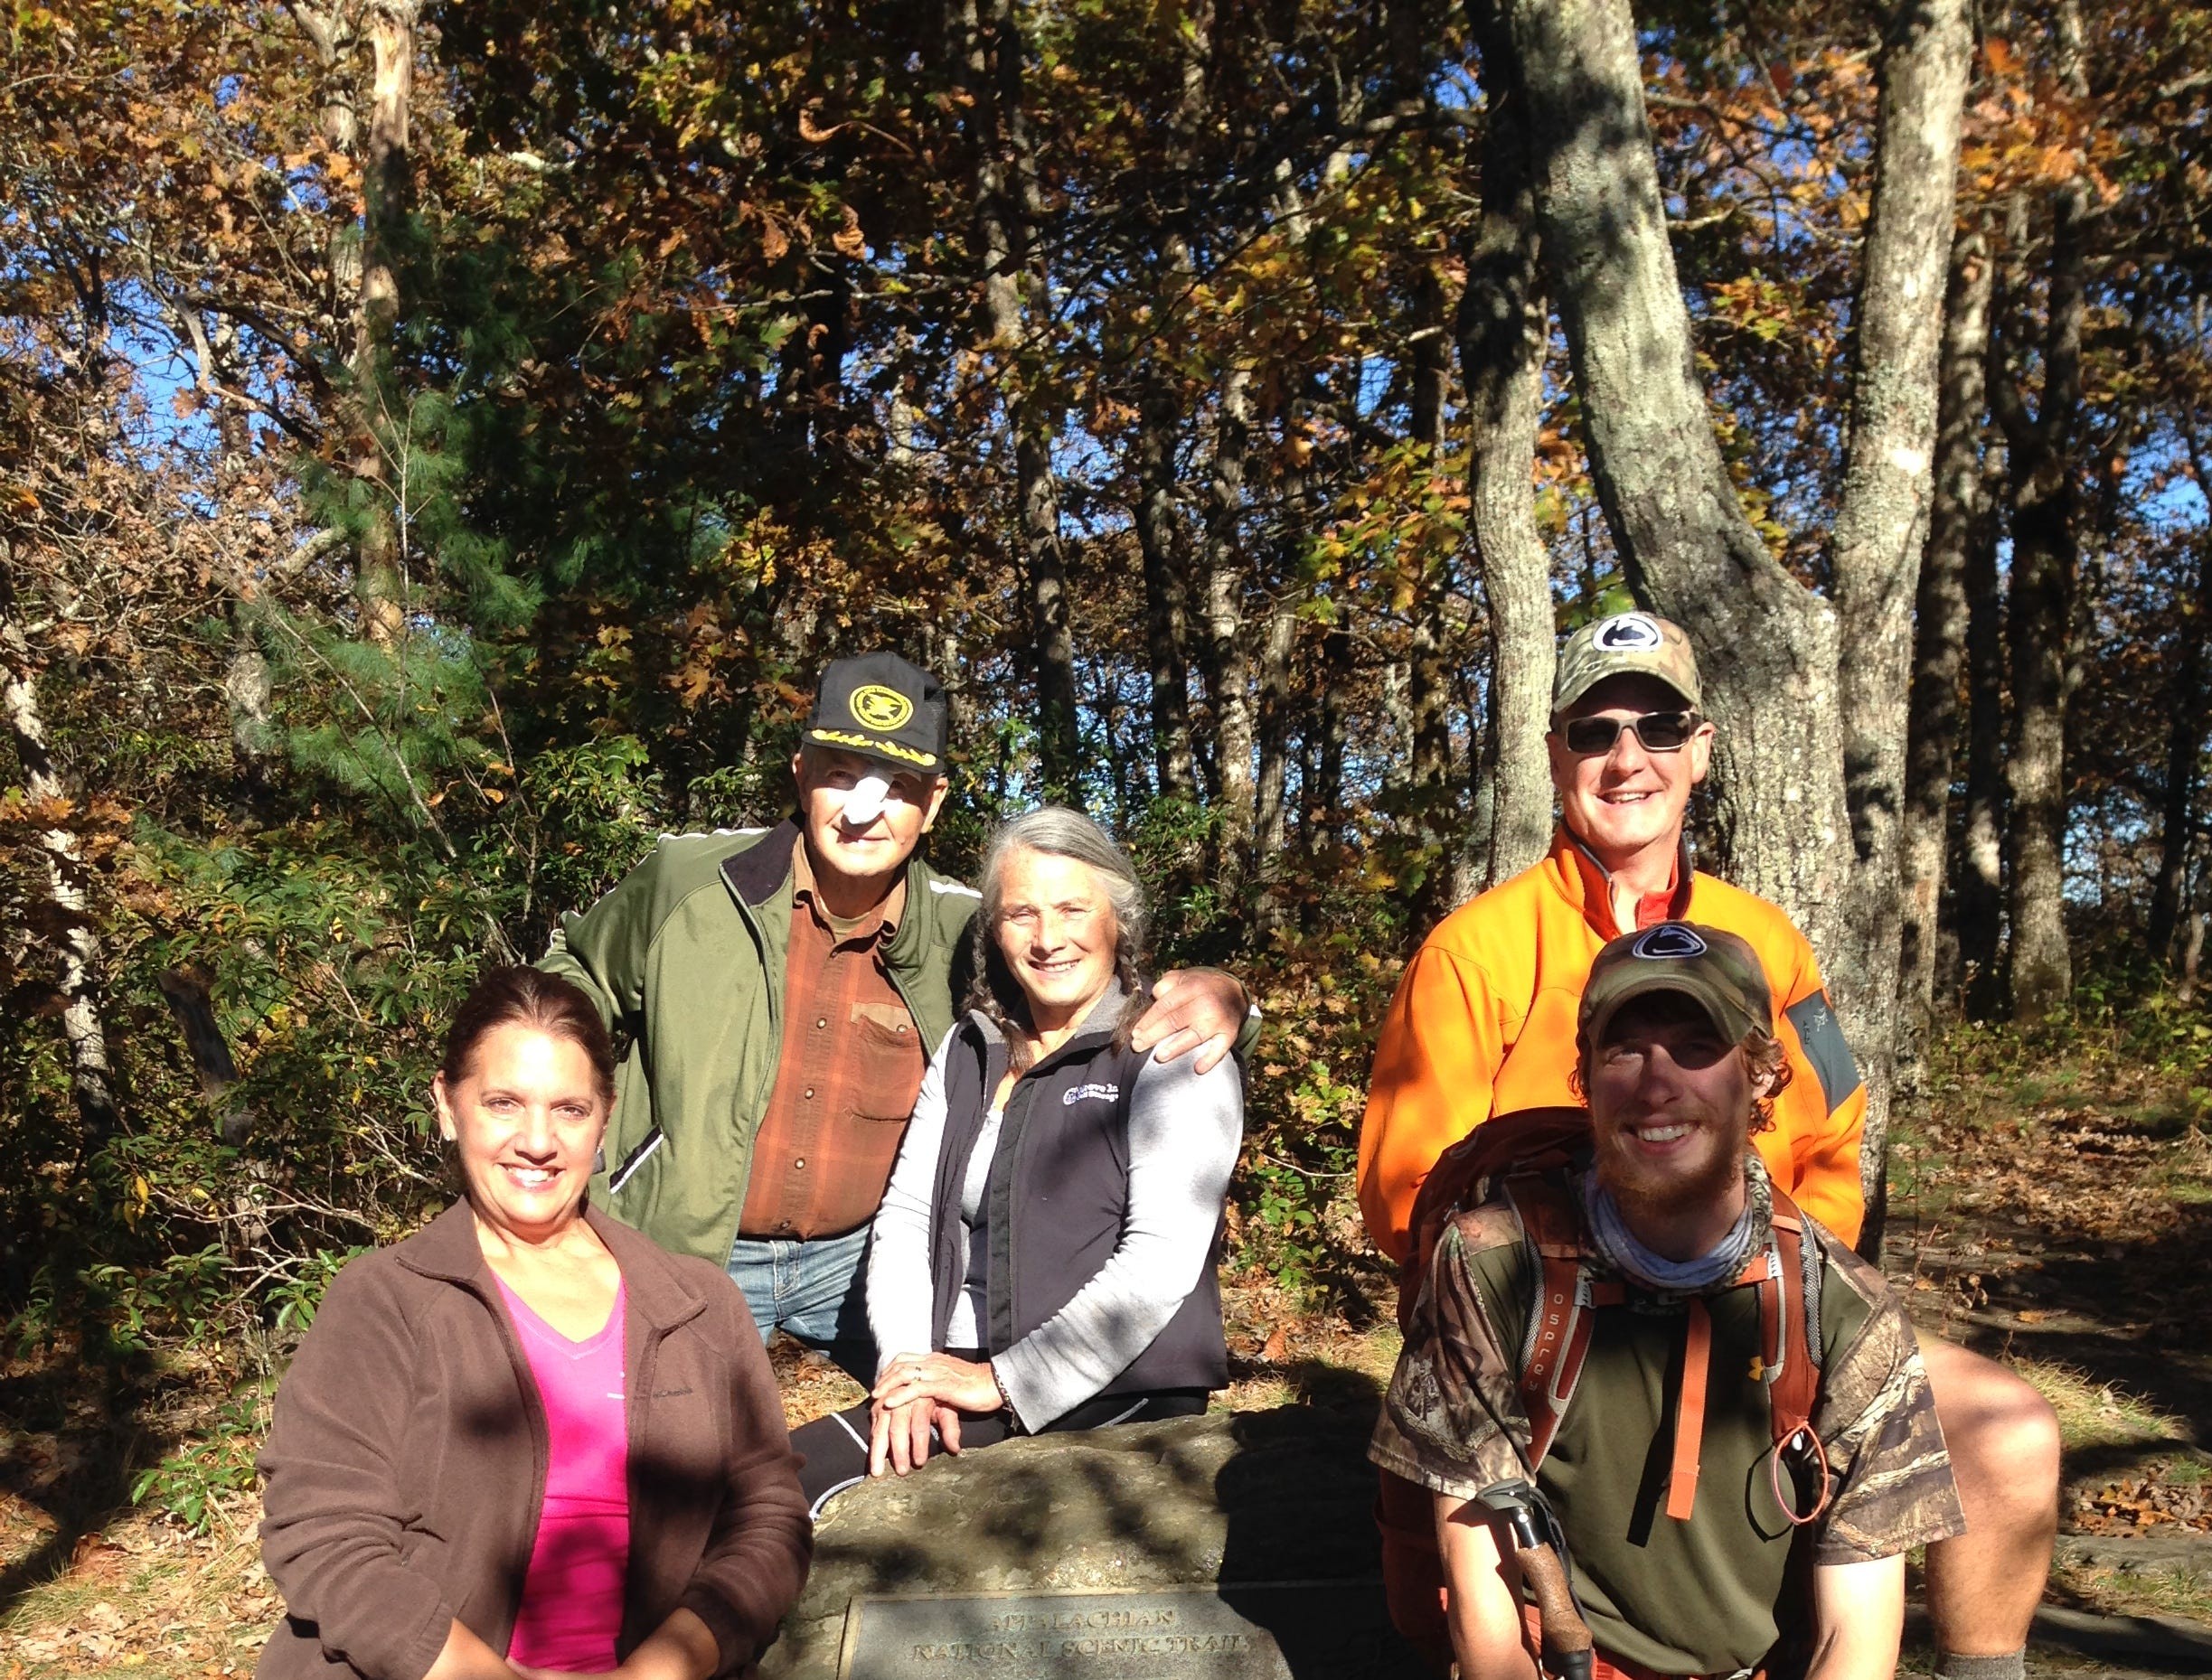 Jacob Gilliland's family joined him on some parts of the Appalachian Trail hike.